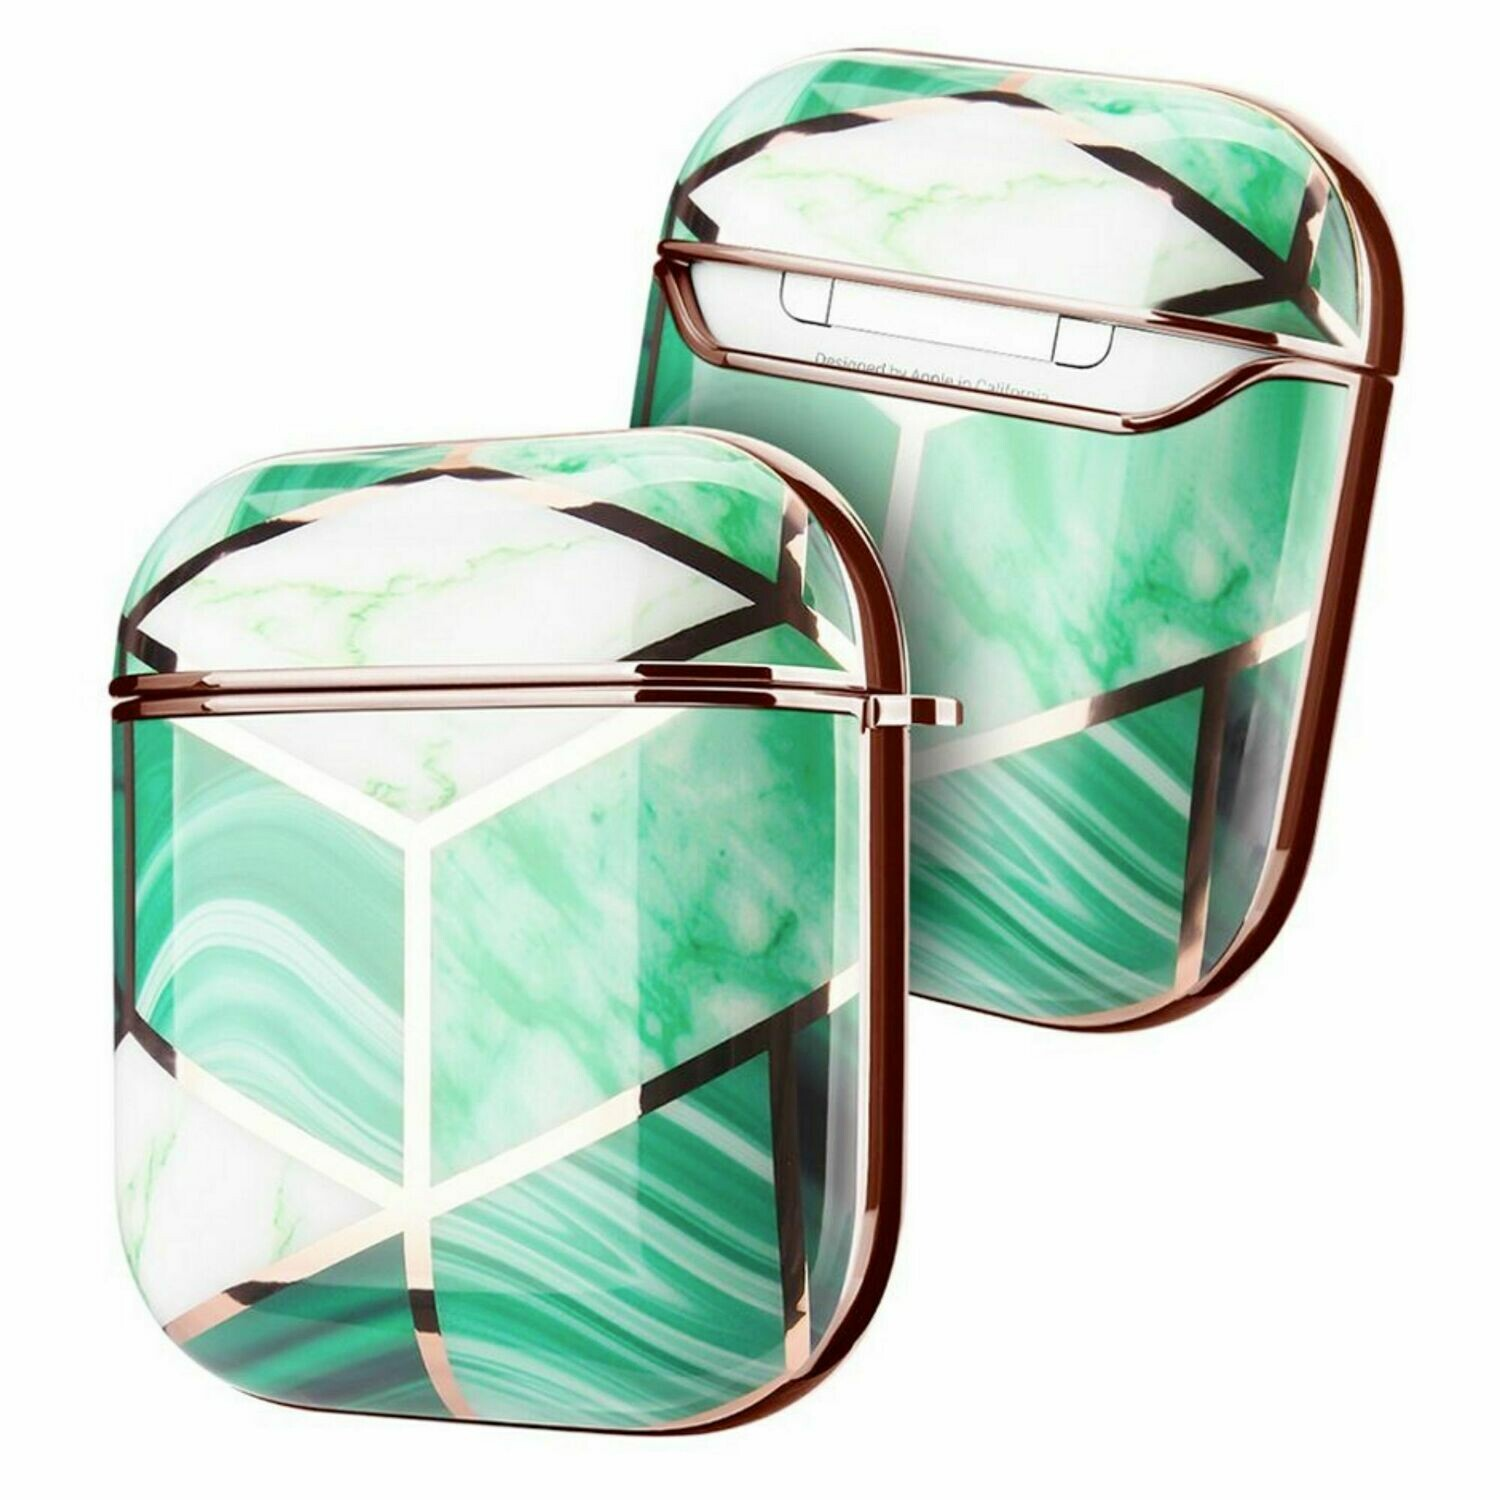 Apple Airpods 1 2 Electroplated Case Cover TPU Design with Key Chain Option, Wireless Charging Support (Electroplated Green Marble | 1/2)